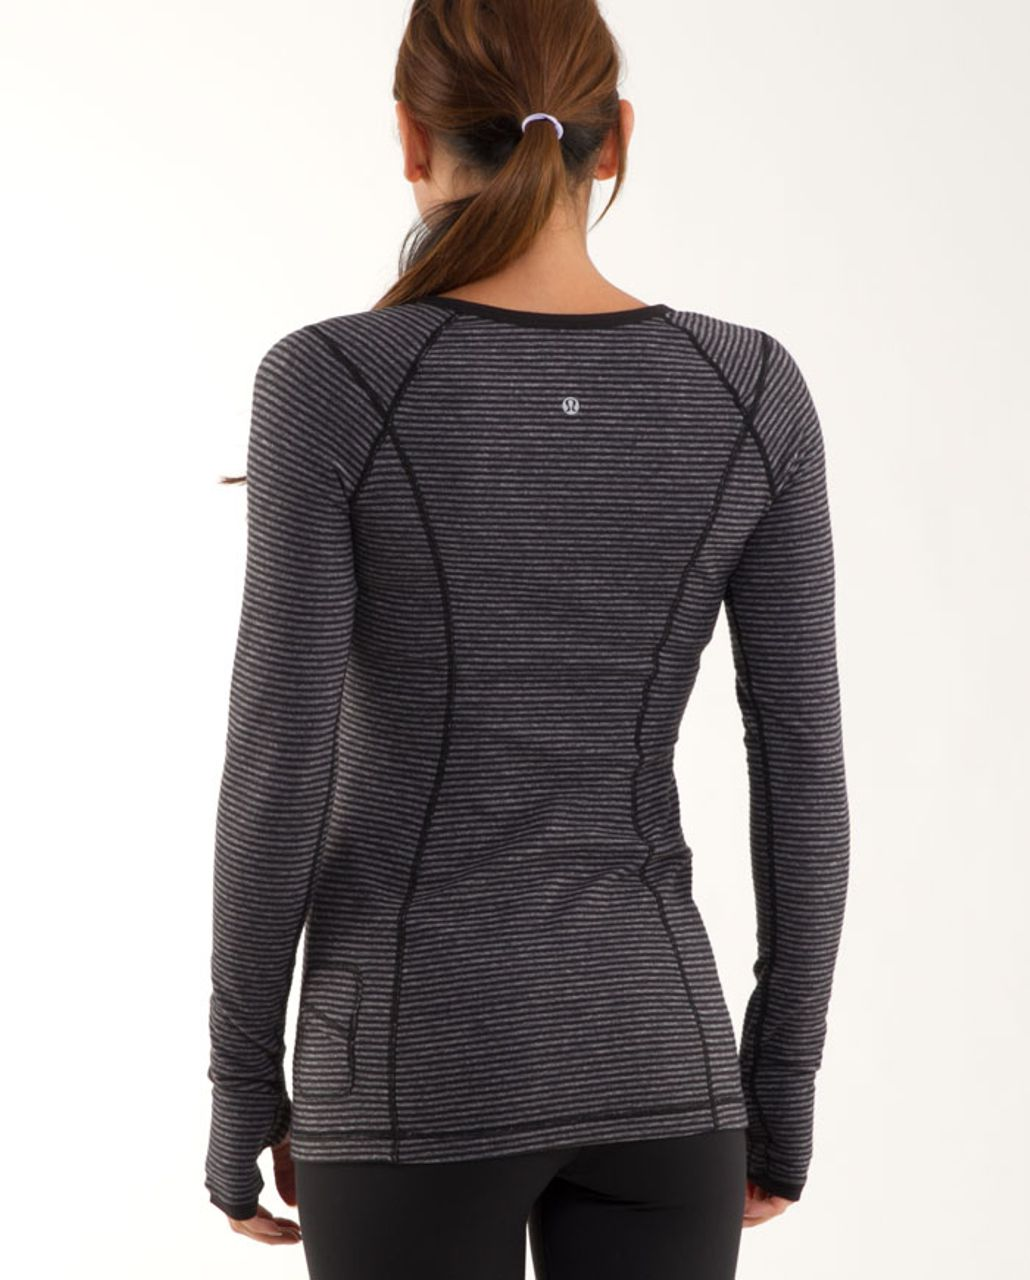 Lululemon Run: Turn Around Long Sleeve - Black Heathered Coal Mini Check /  Reflective Sparkle Splatter